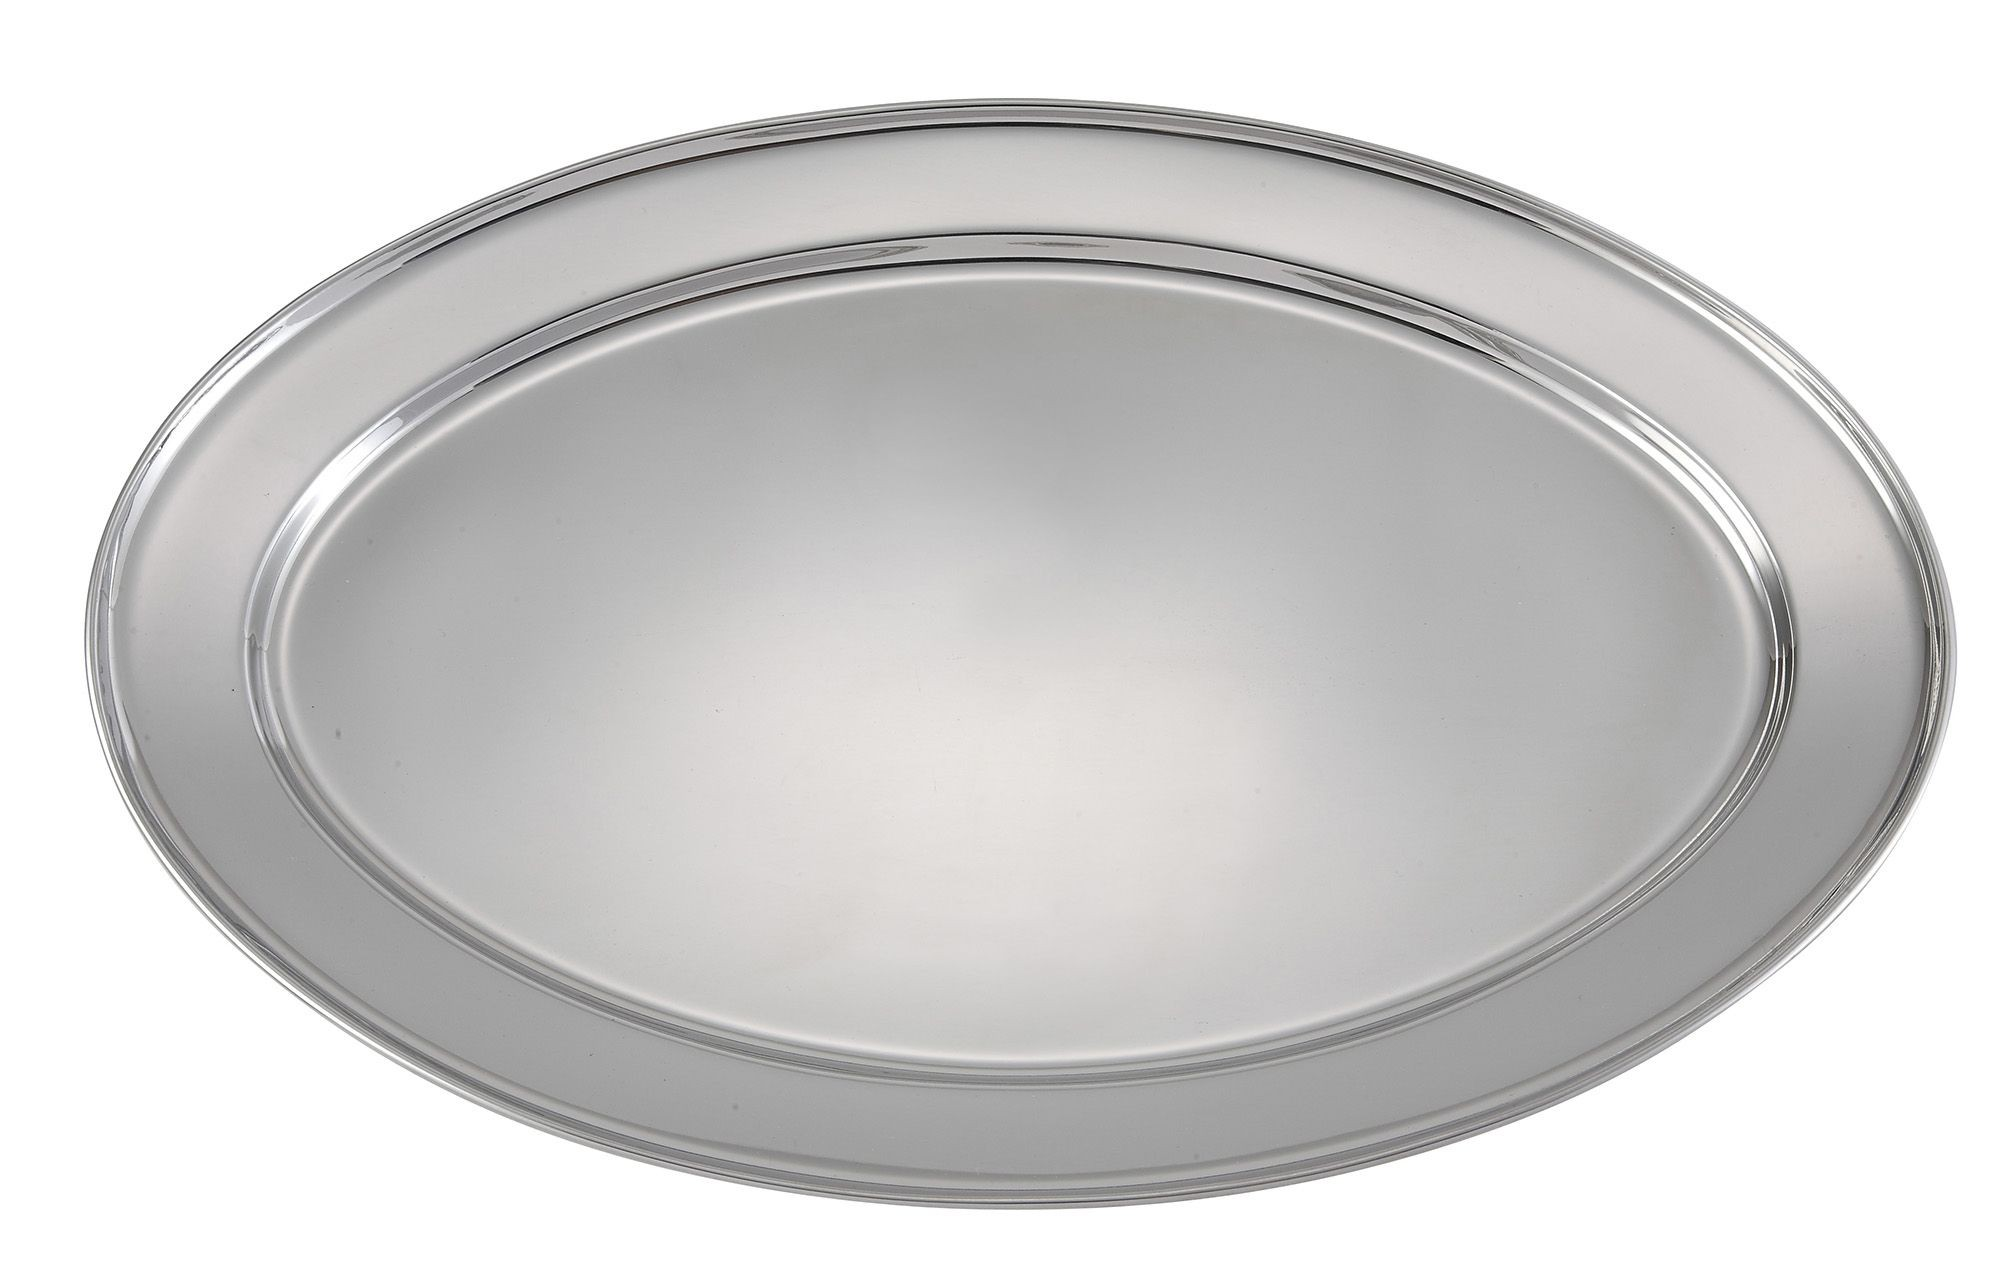 "Winco OPL-22 Stainless Steel Oval Platter, 21-3/4"" x 14-1/2"""